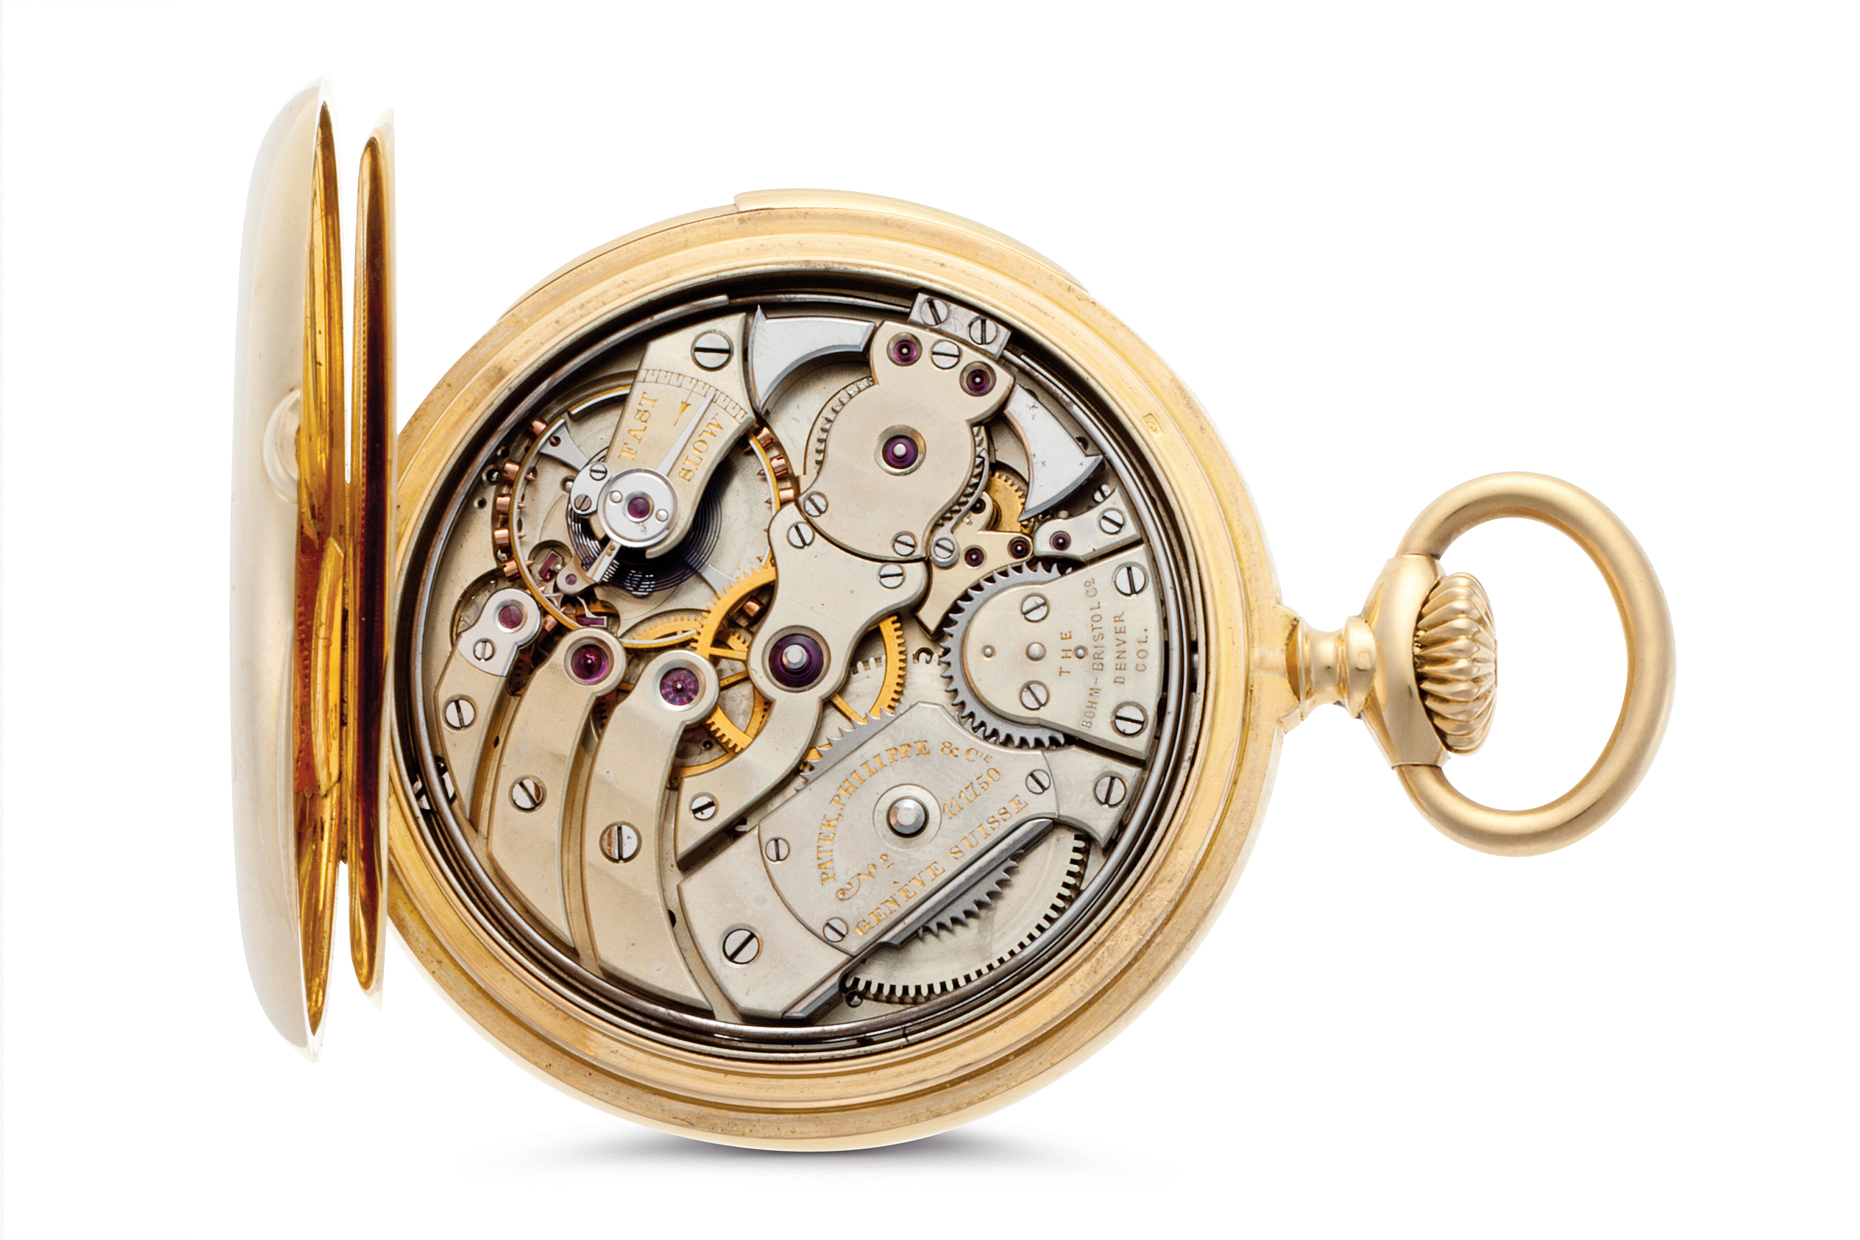 A beautiful gold Patek Philippe pocket watch made in Geneva Switzerland